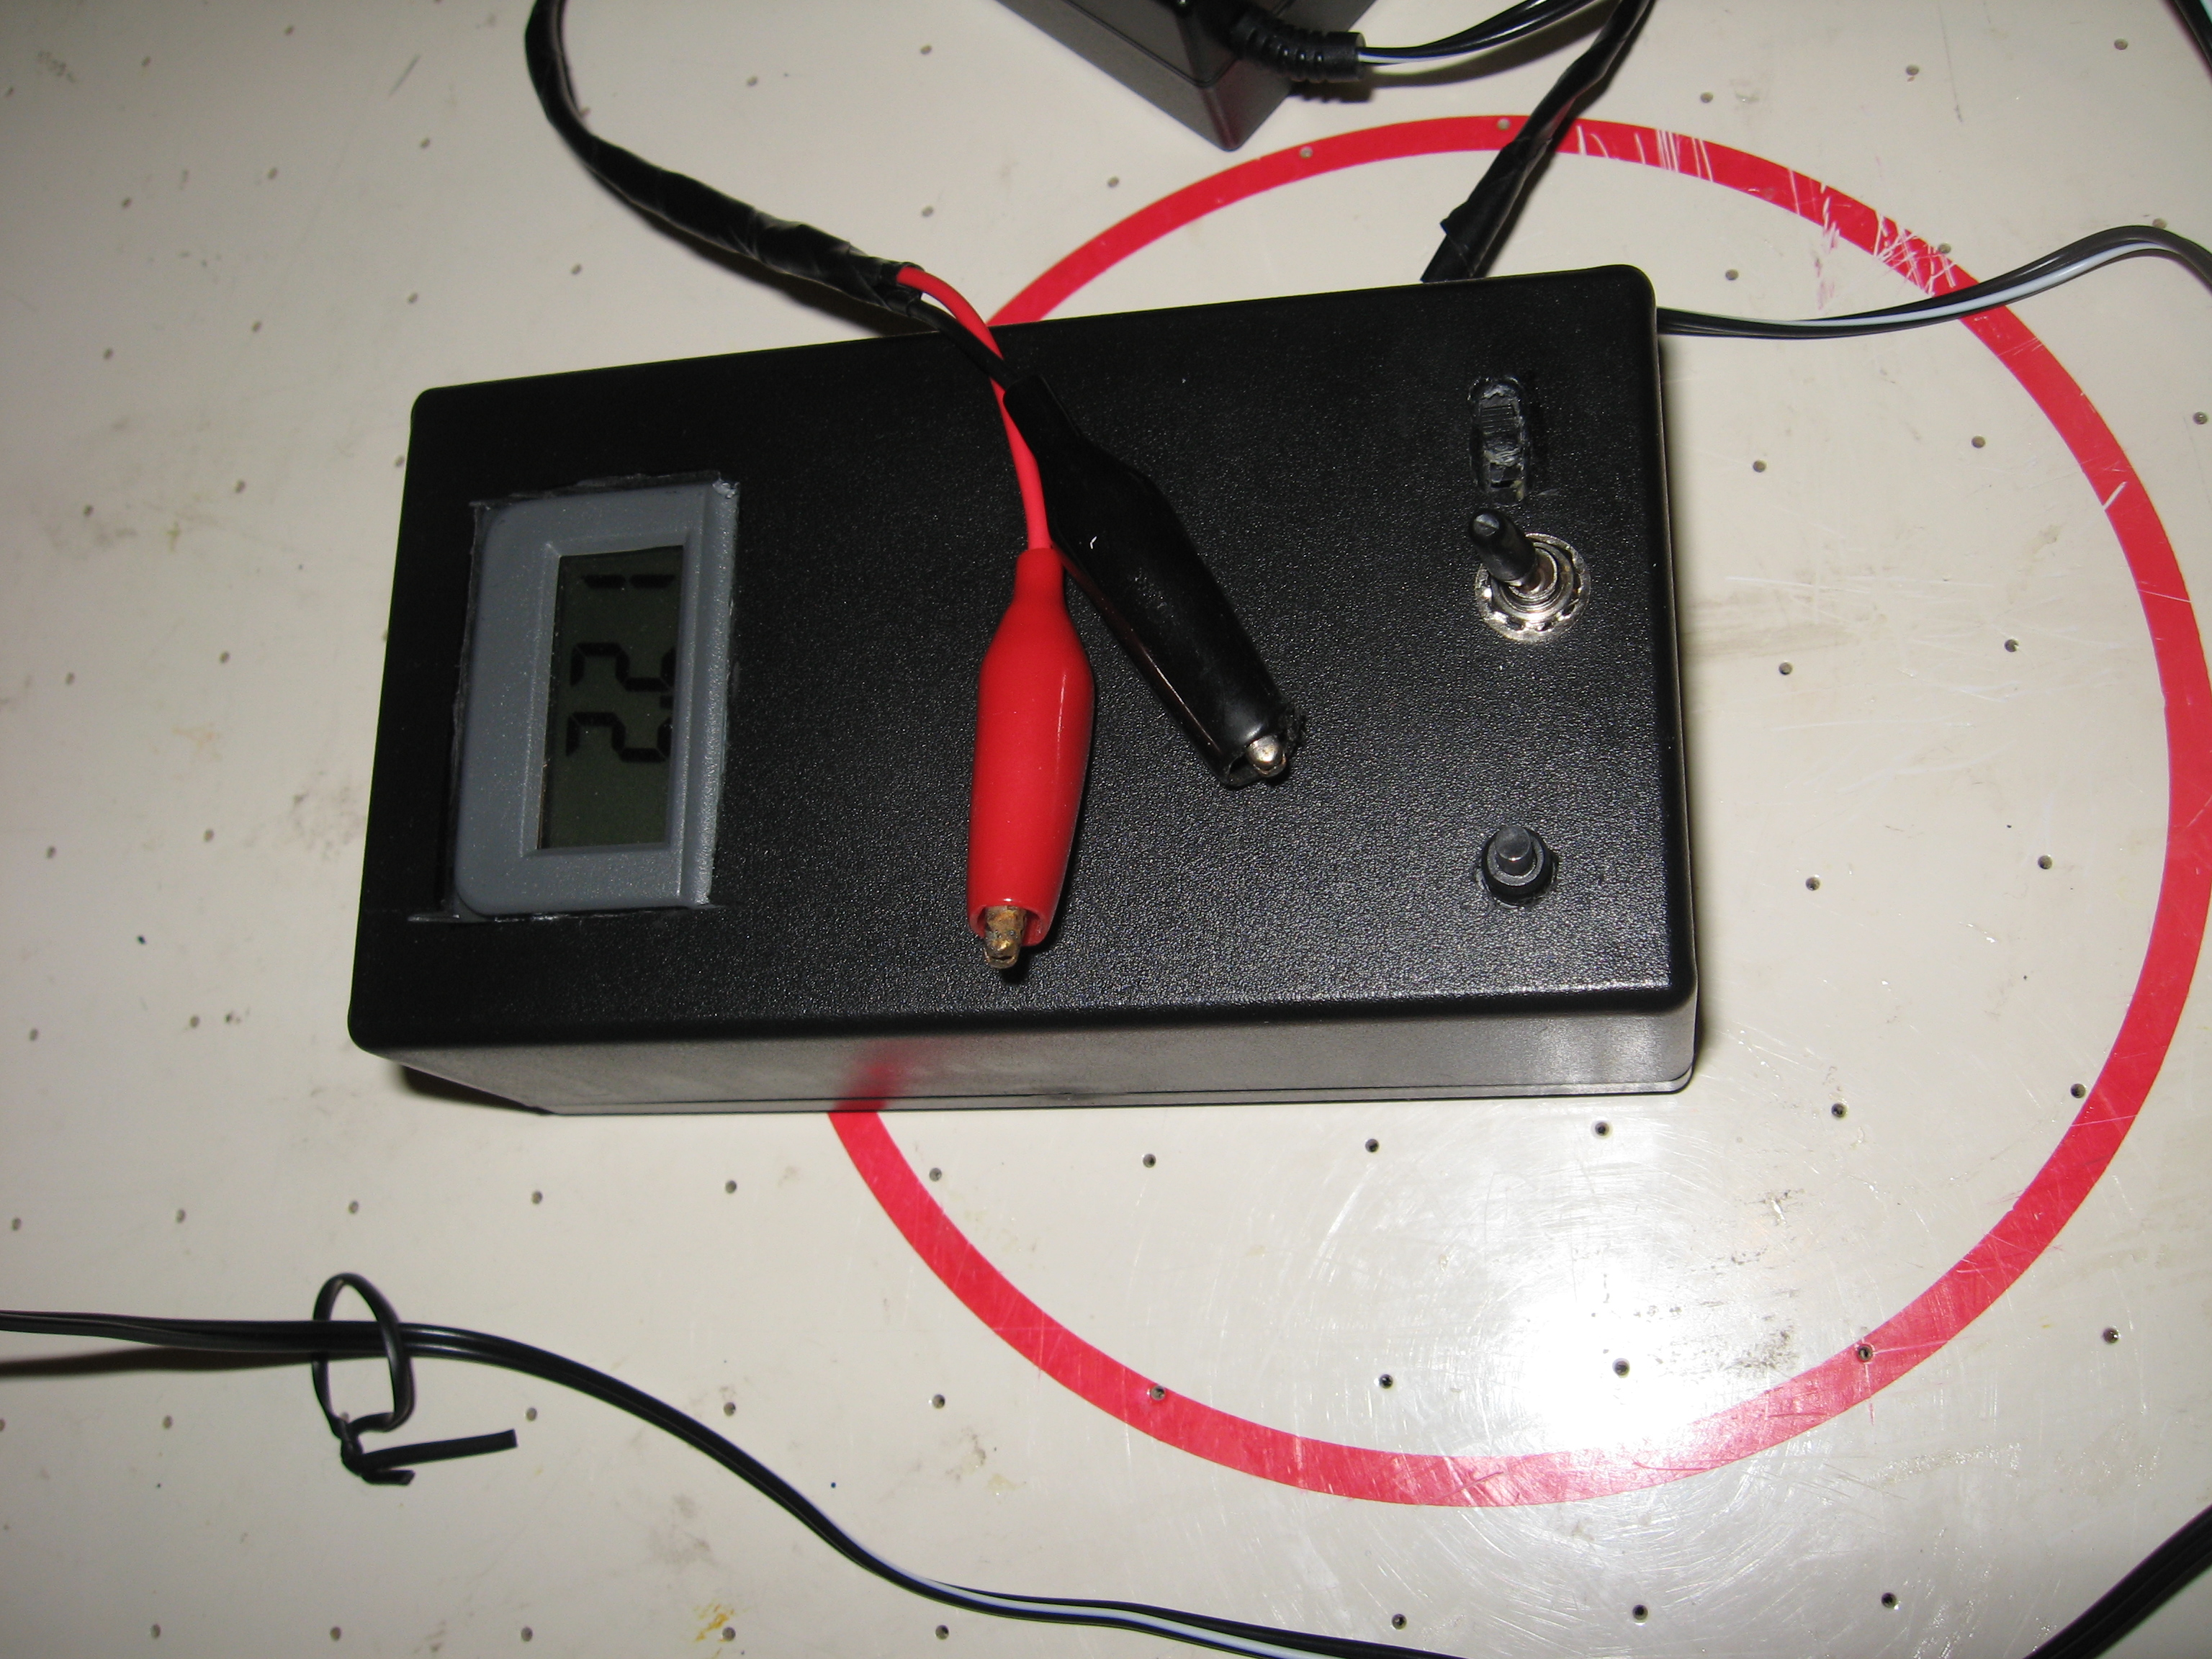 Variable DC Power Supply for <$15